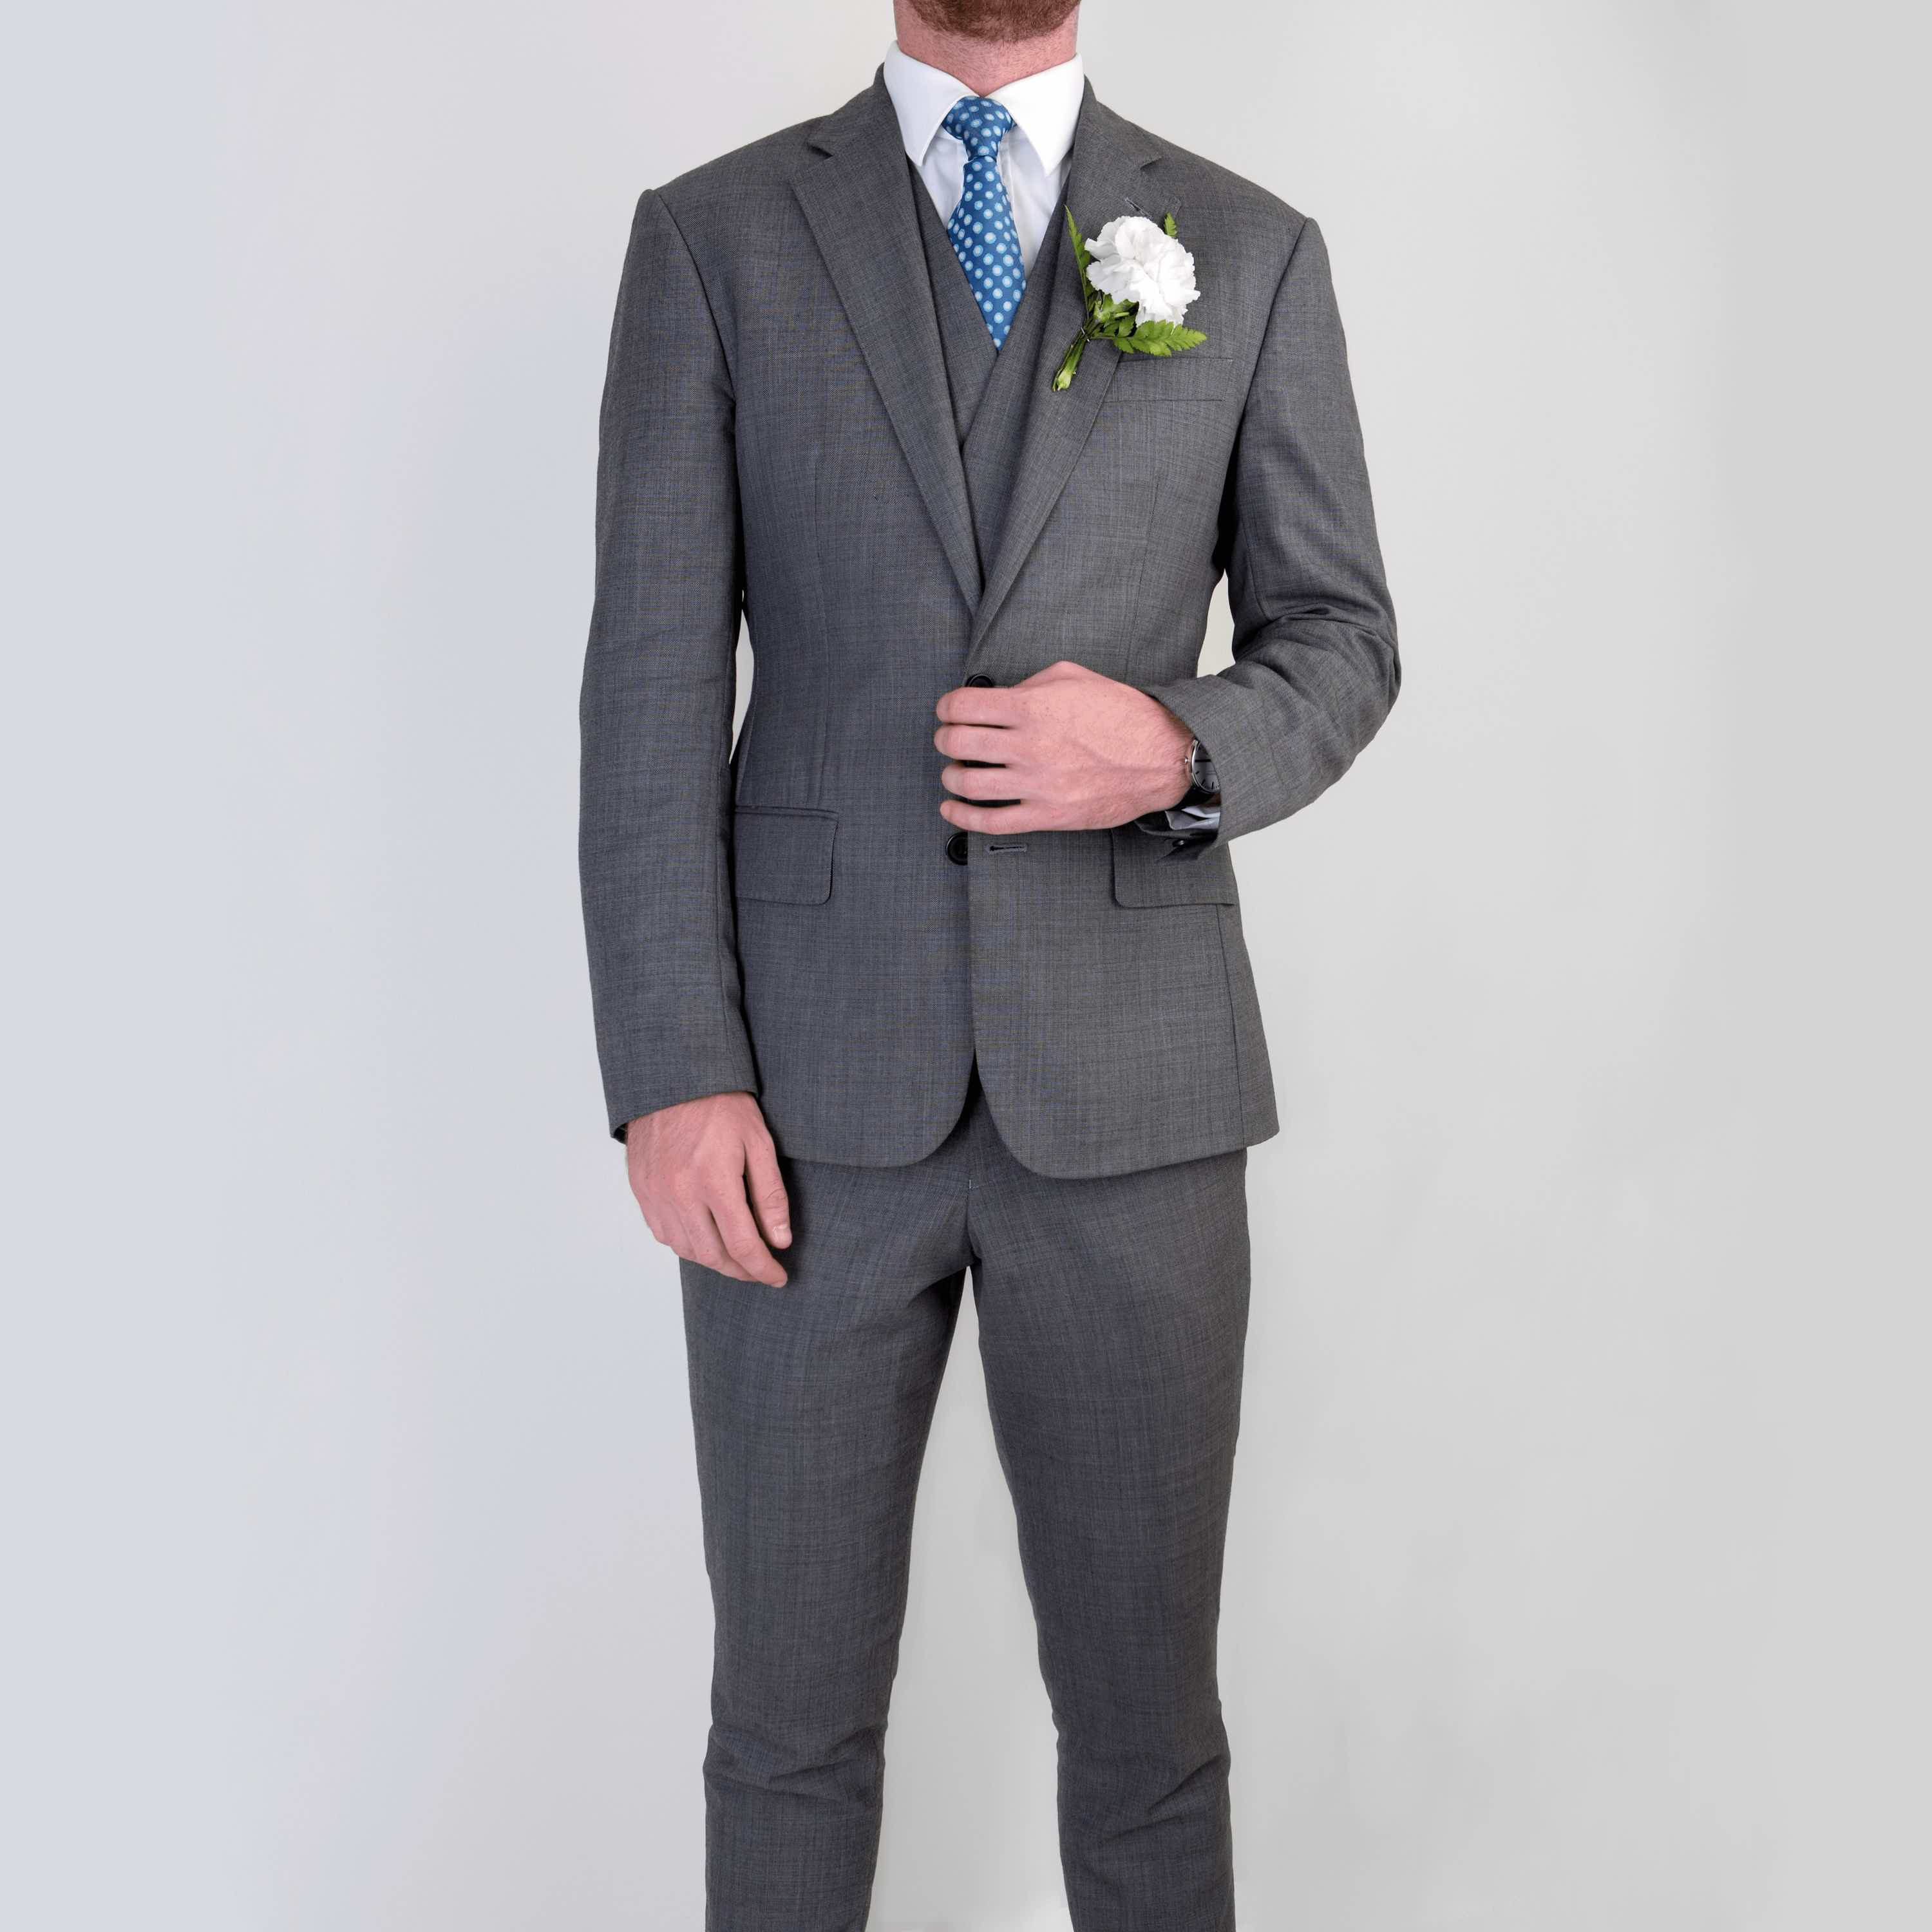 Bespoke three piece wedding suit with waistcoat tailored by Mullen and Mullen